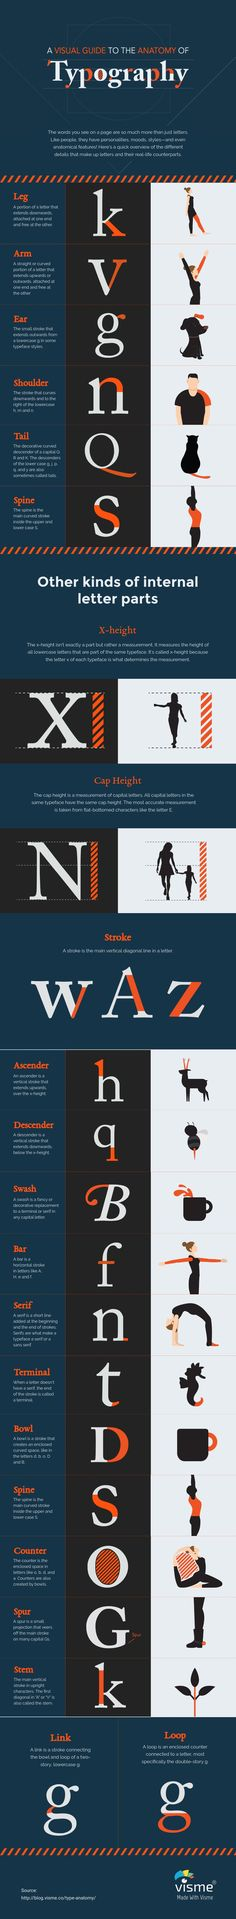 type anatomy A-Visual-Guide-to-the-Anatomy-of-Typography (infographic)